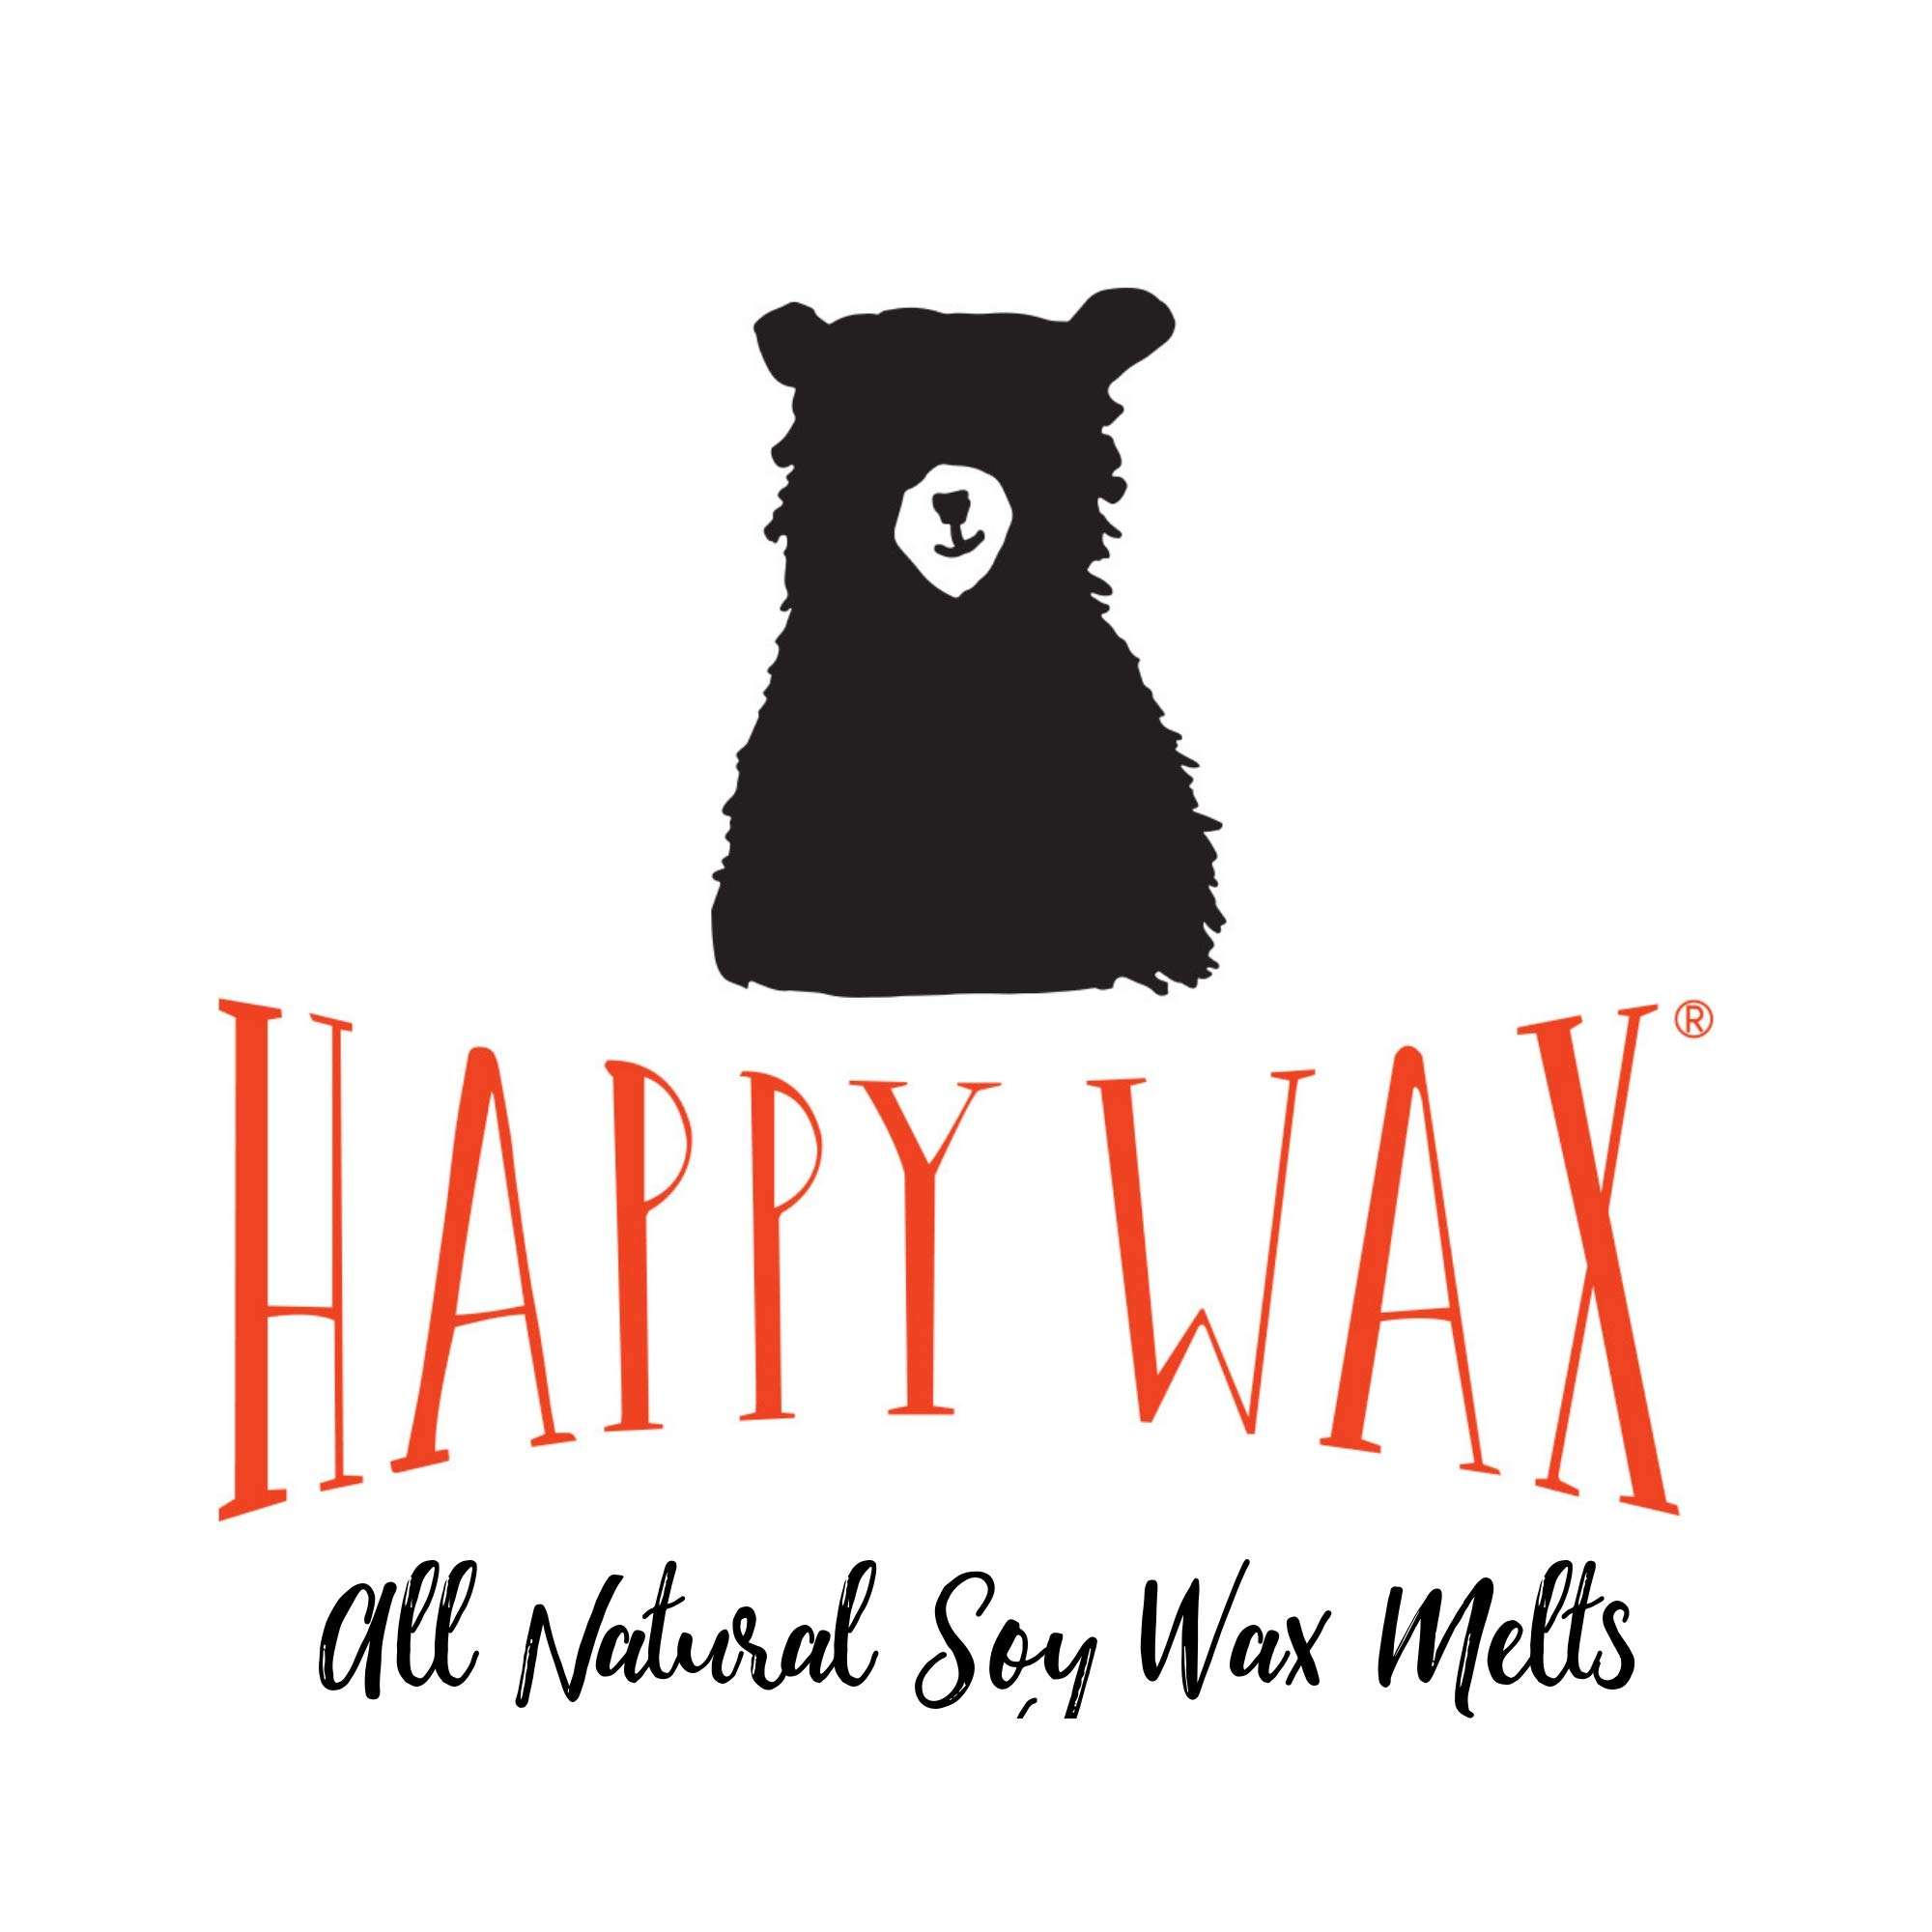 Happy Wax - Four Mixed Tins Wax Melt Gift Set - Includes 3.6 Oz Each of Our Scented Soy Wax Melts in Our Cocktail Mix, Fresh Mix, Citrus Mix, and Spa Day Mix! by Happy Wax (Image #9)